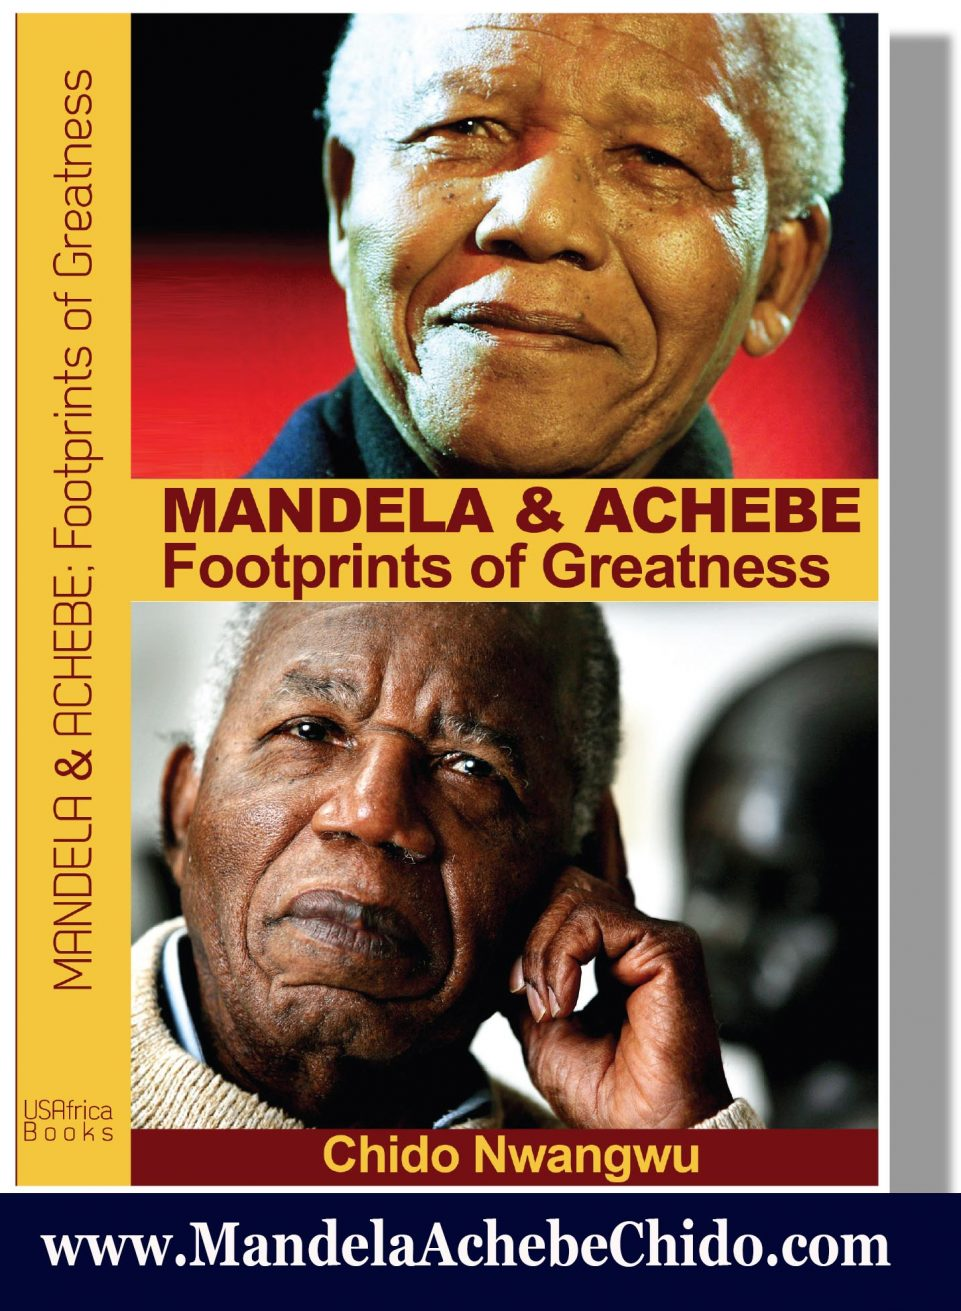 Mandela_Achebe_book-by-Chido_2013_cover-Lrs